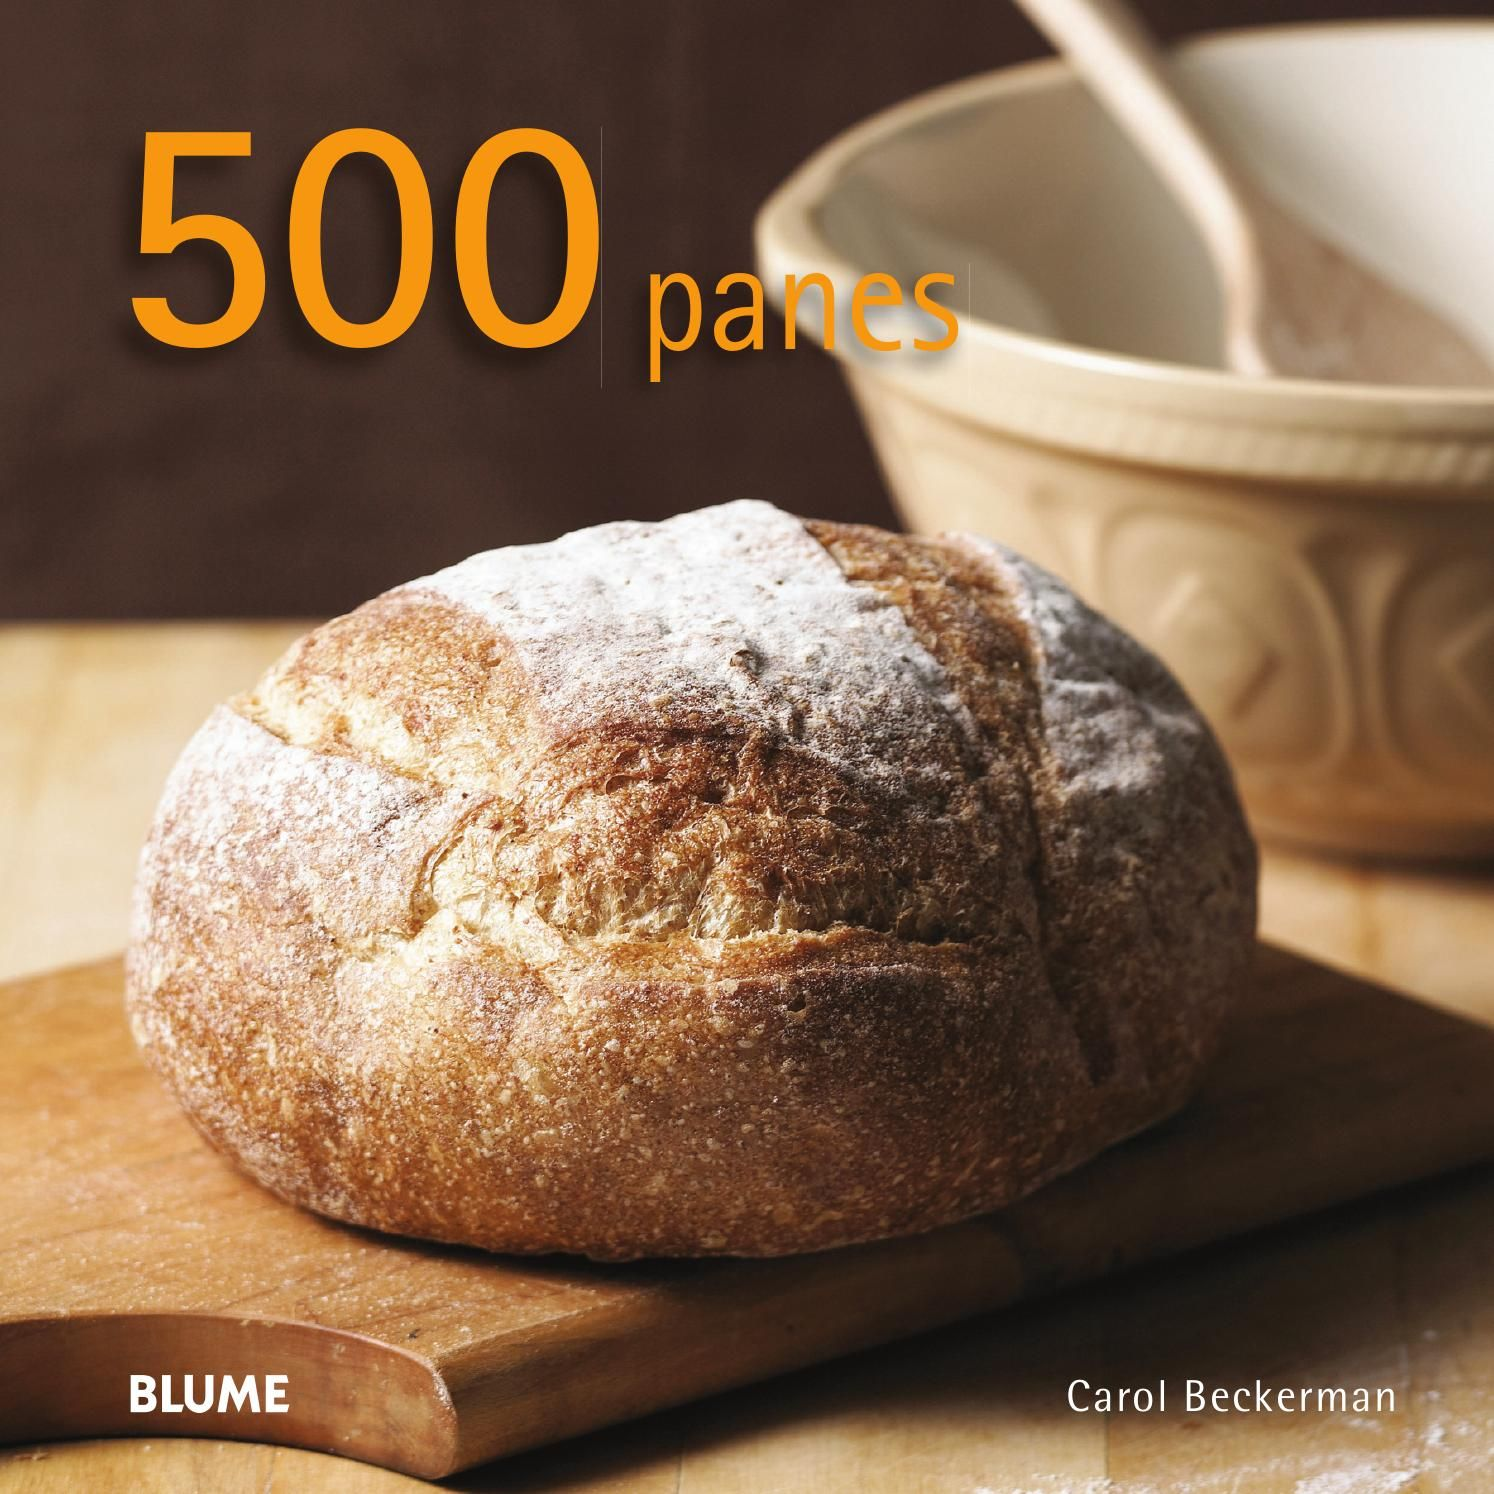 Libro De Recetas Kitchenaid 500 Panes Pinterest Thermomix Pan Bread And Pizzas